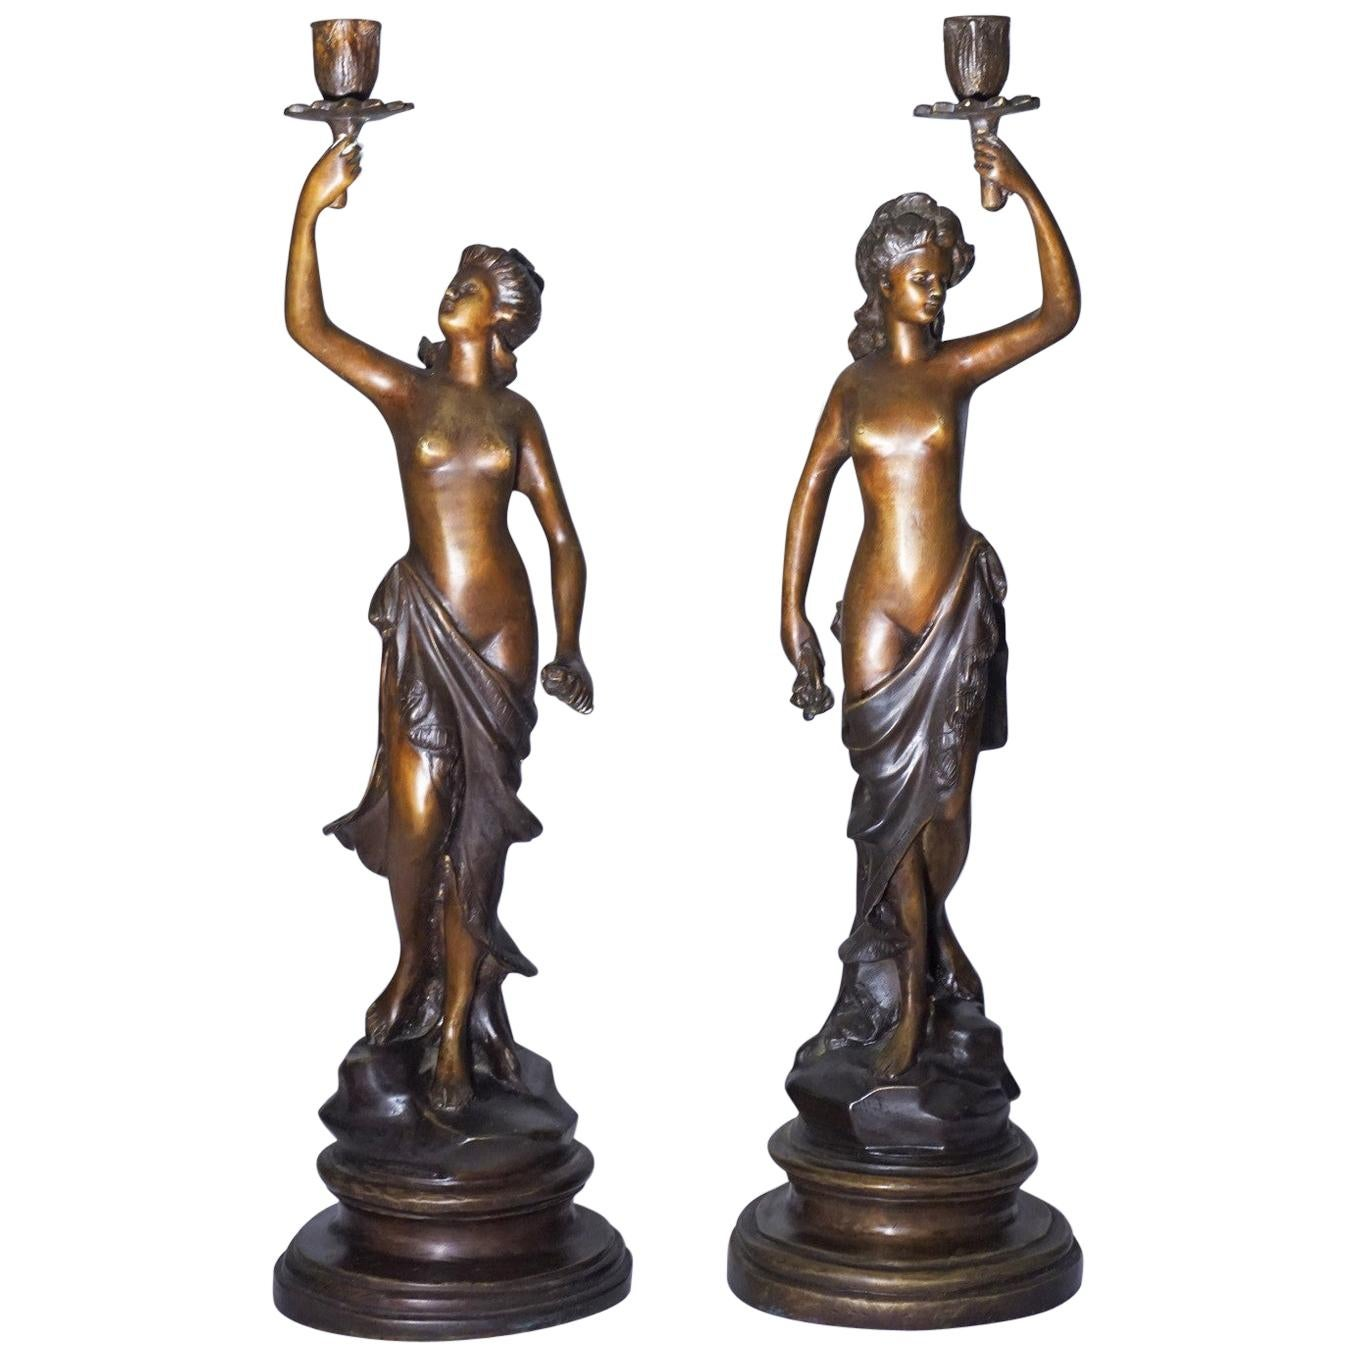 19th Century Pair of French Patinated Bronze Sculptures Candelabra Candleholders